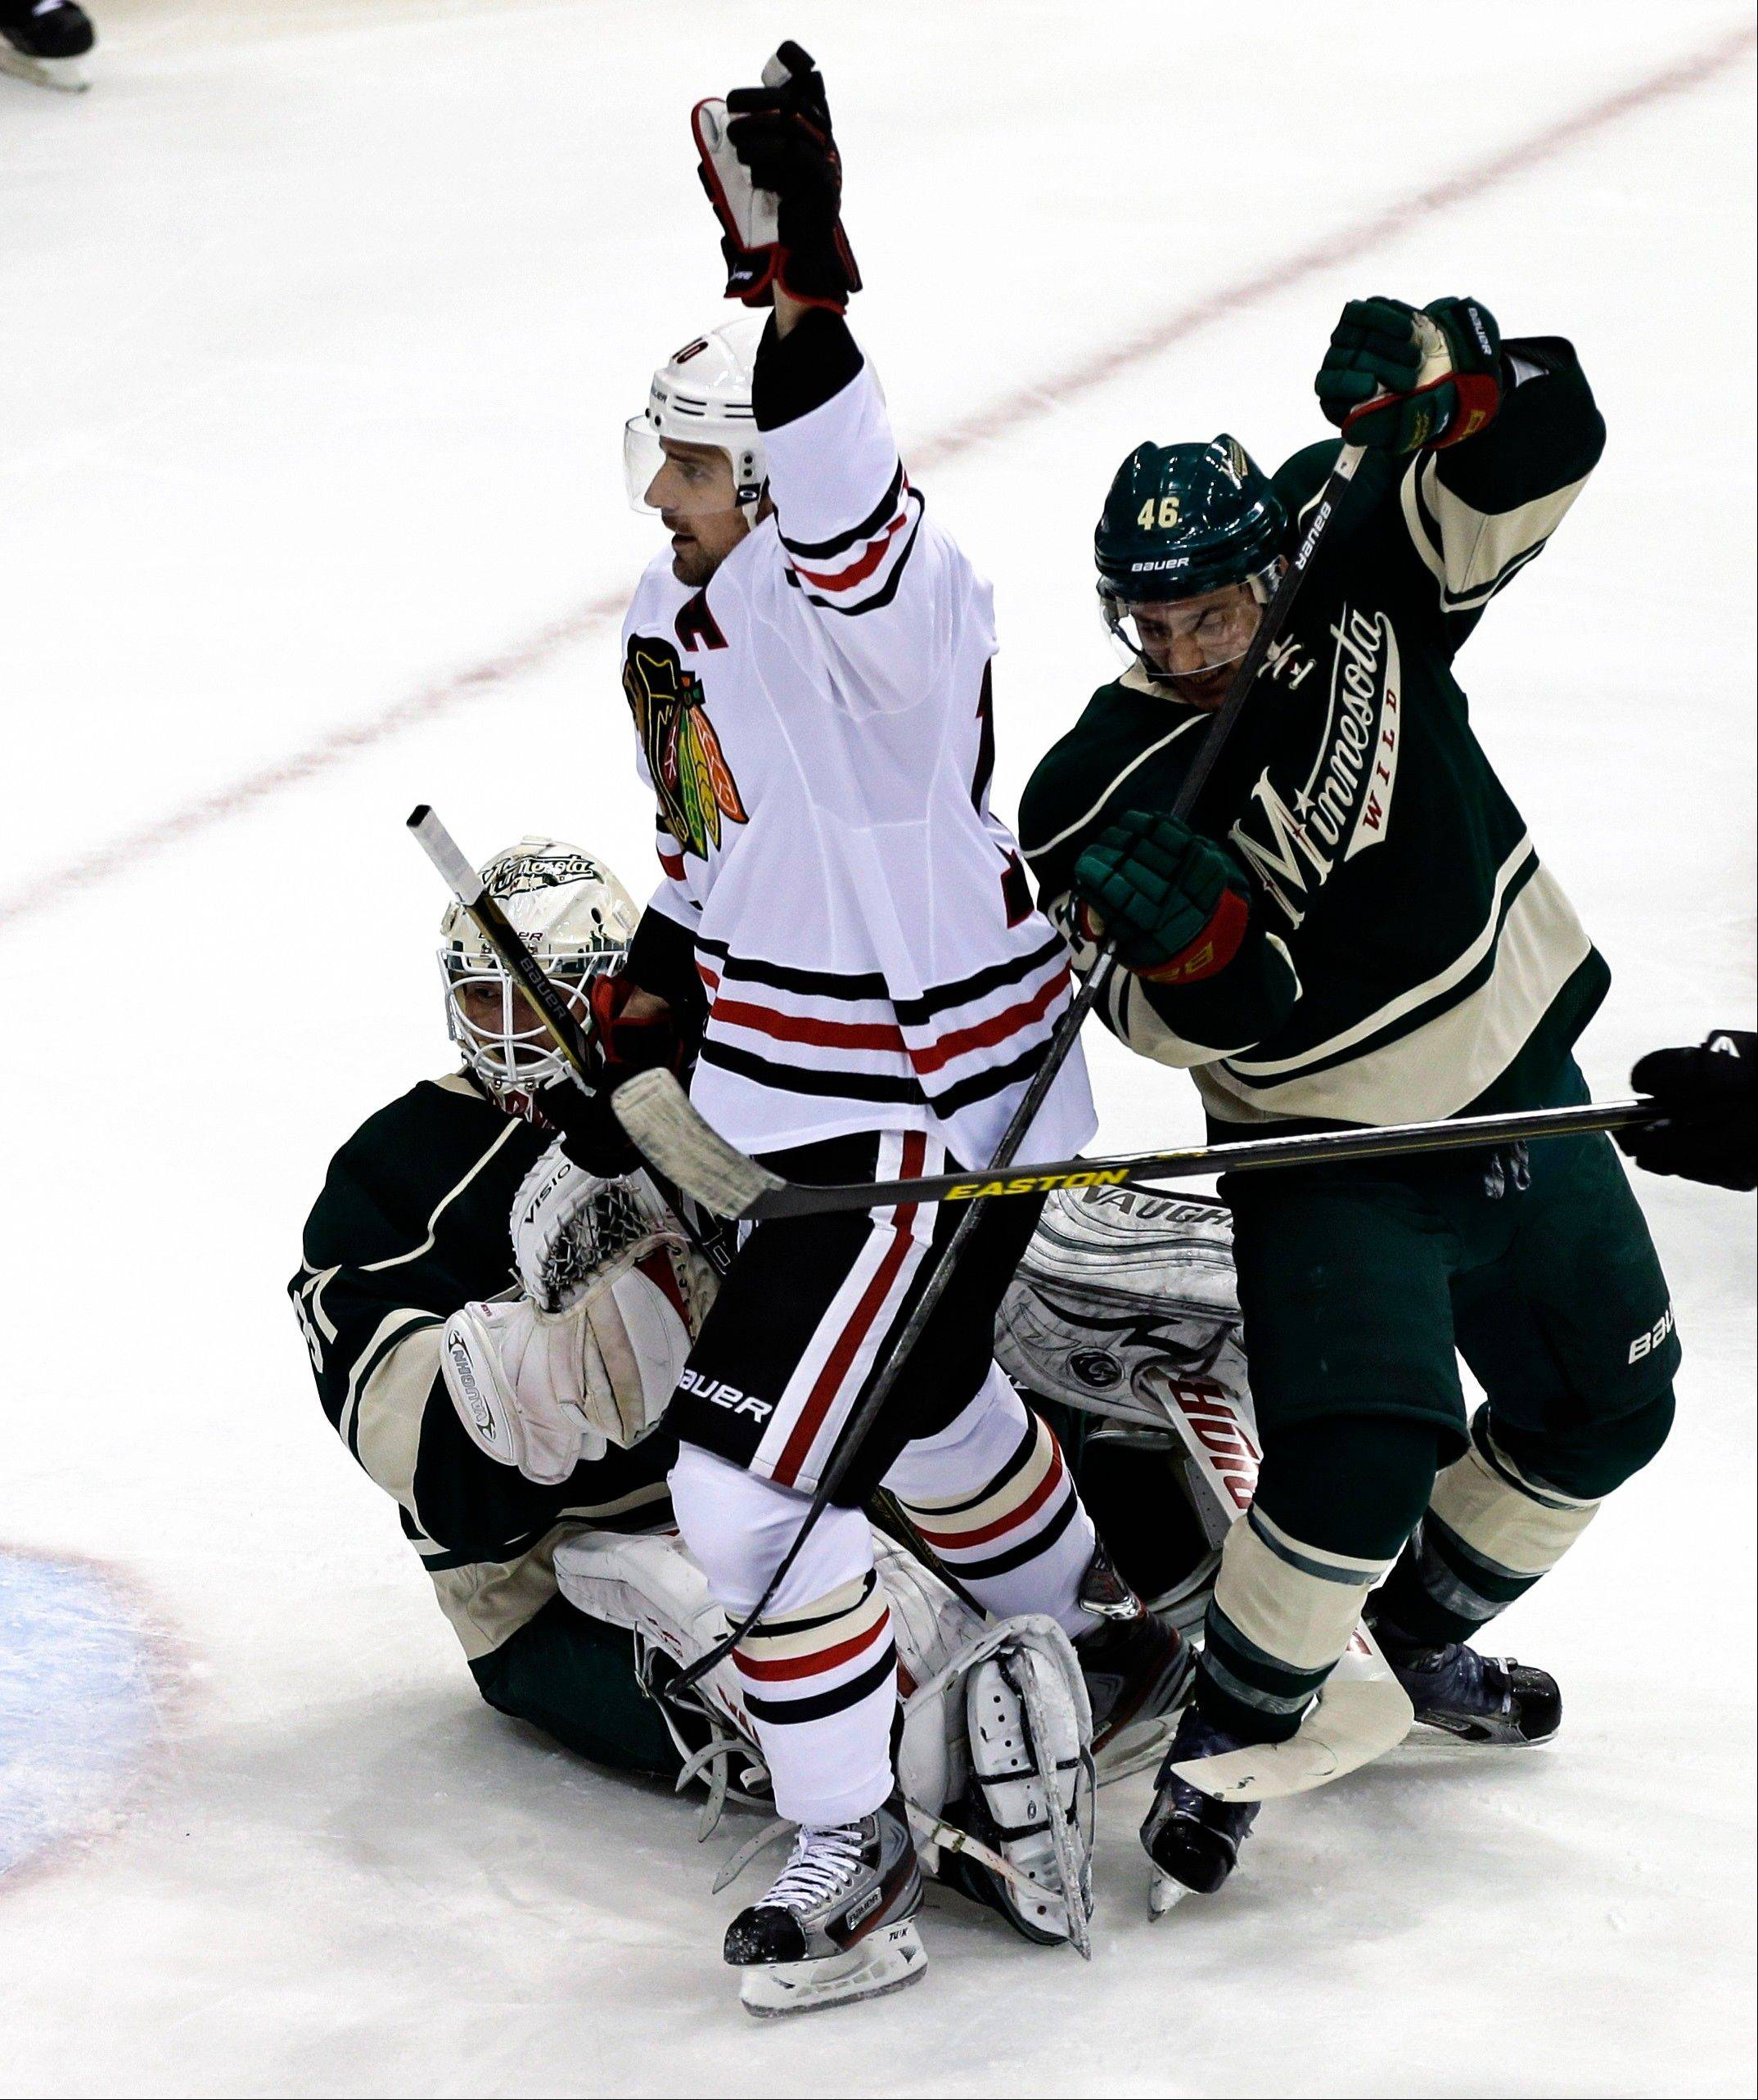 The Blackhawks' Patrick Sharp, middle, celebrates his goal off Minnesota Wild goalie Josh Harding in the first period of Game 4 on Tuesday night. At right is Wild's Jared Spurgeon.